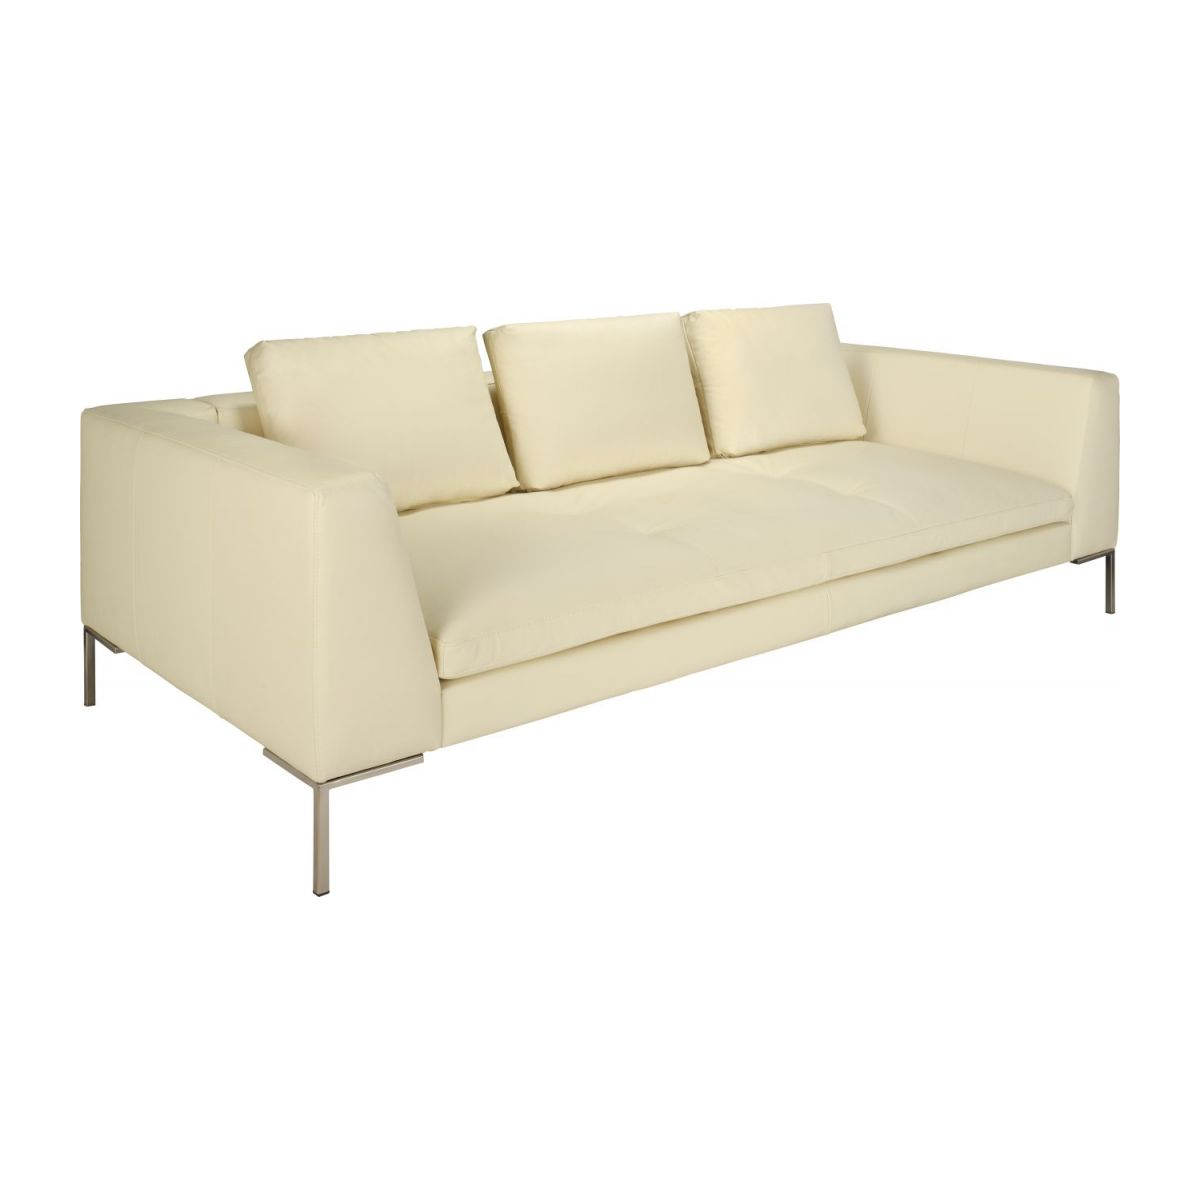 3 seater sofa in Eton veined leather, cream n°1